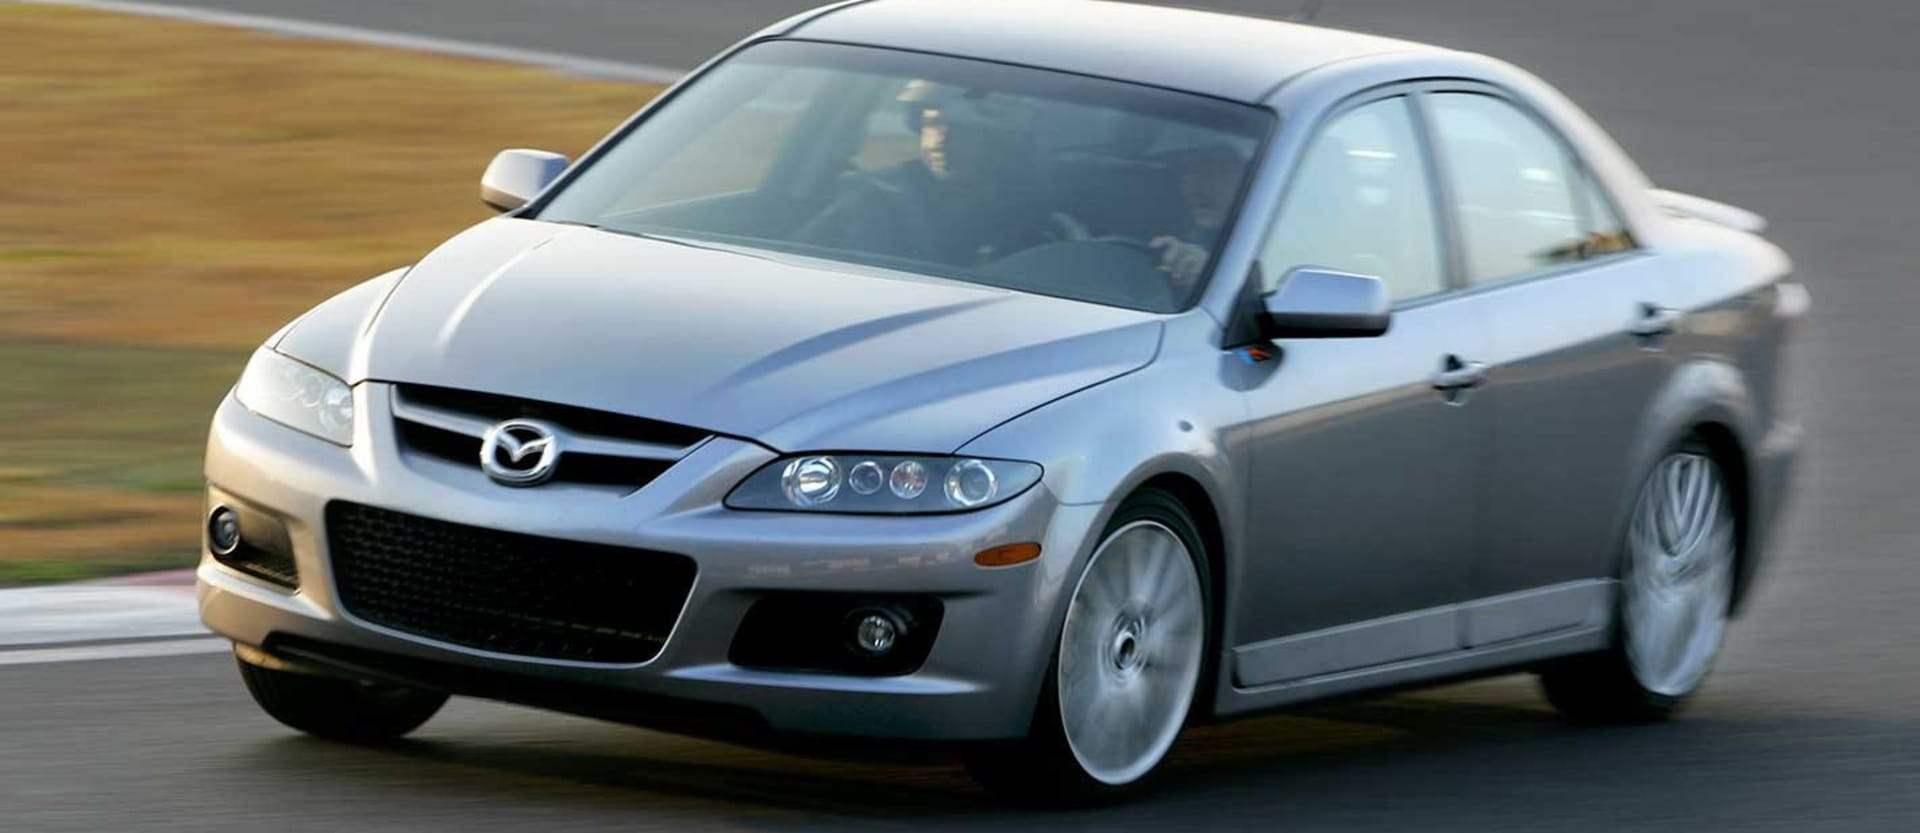 2005 Mazda 6 MPS review classic MOTOR